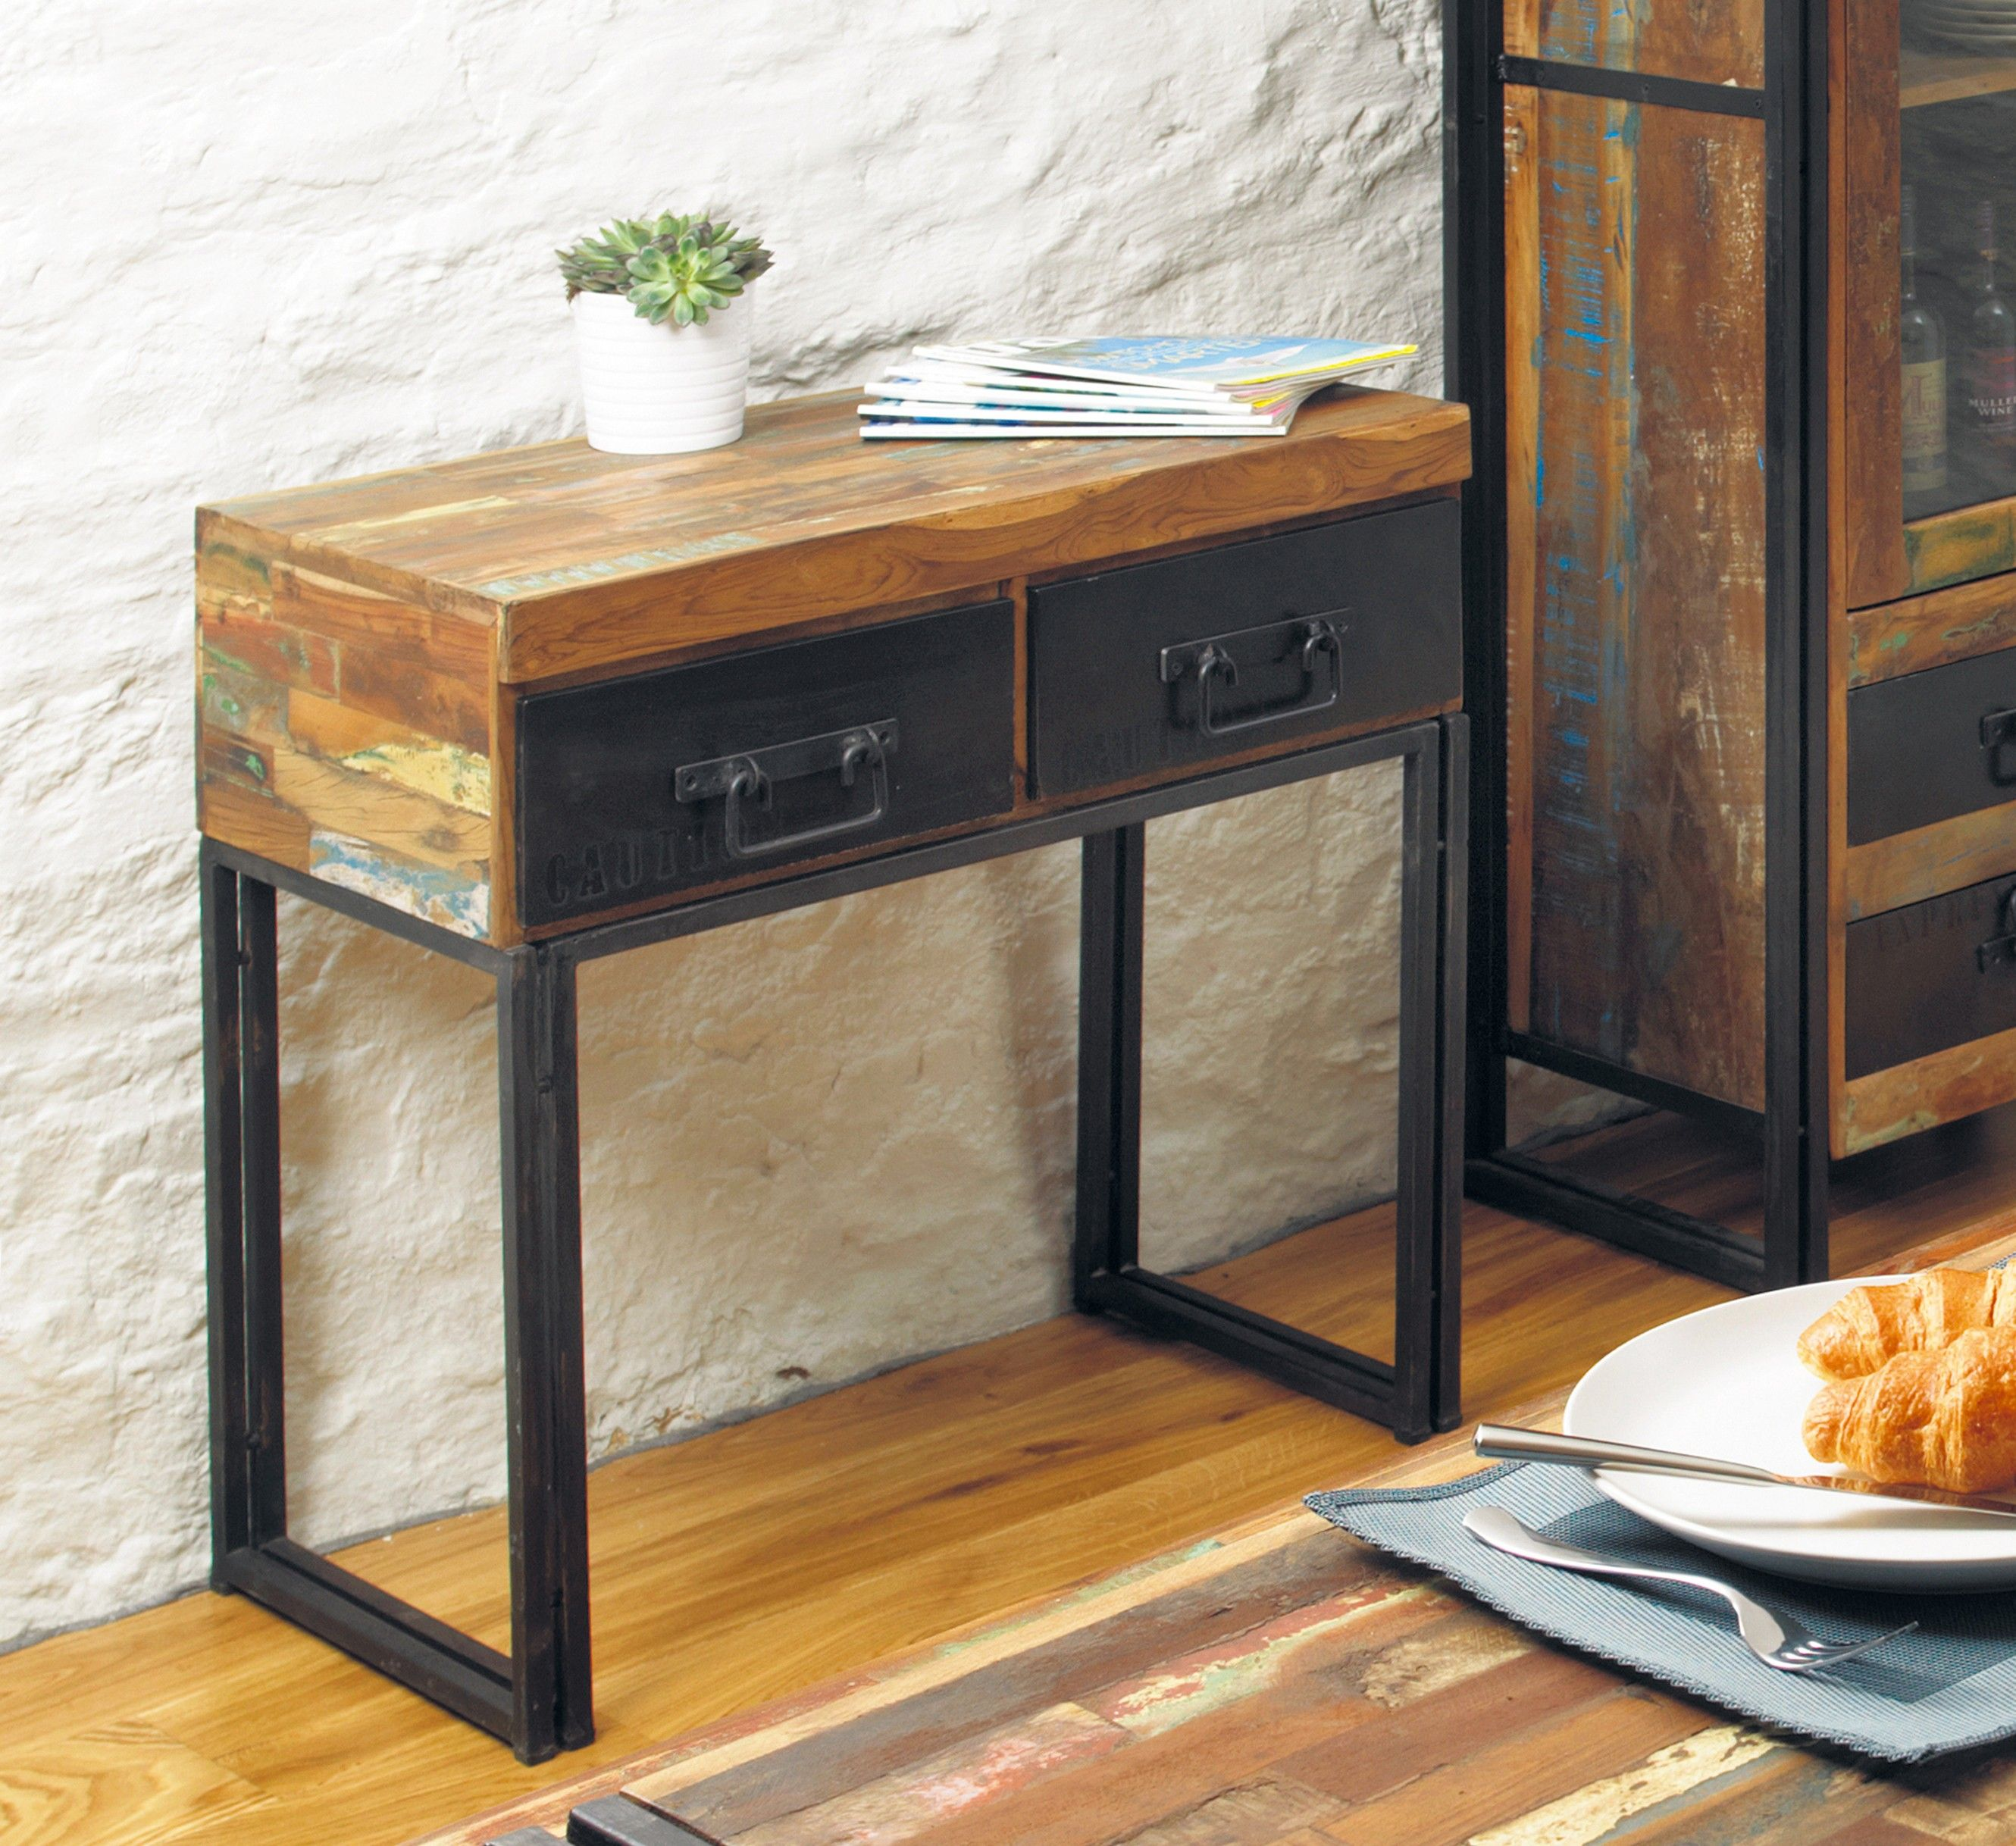 Urban Chic Salvage Furniture Range